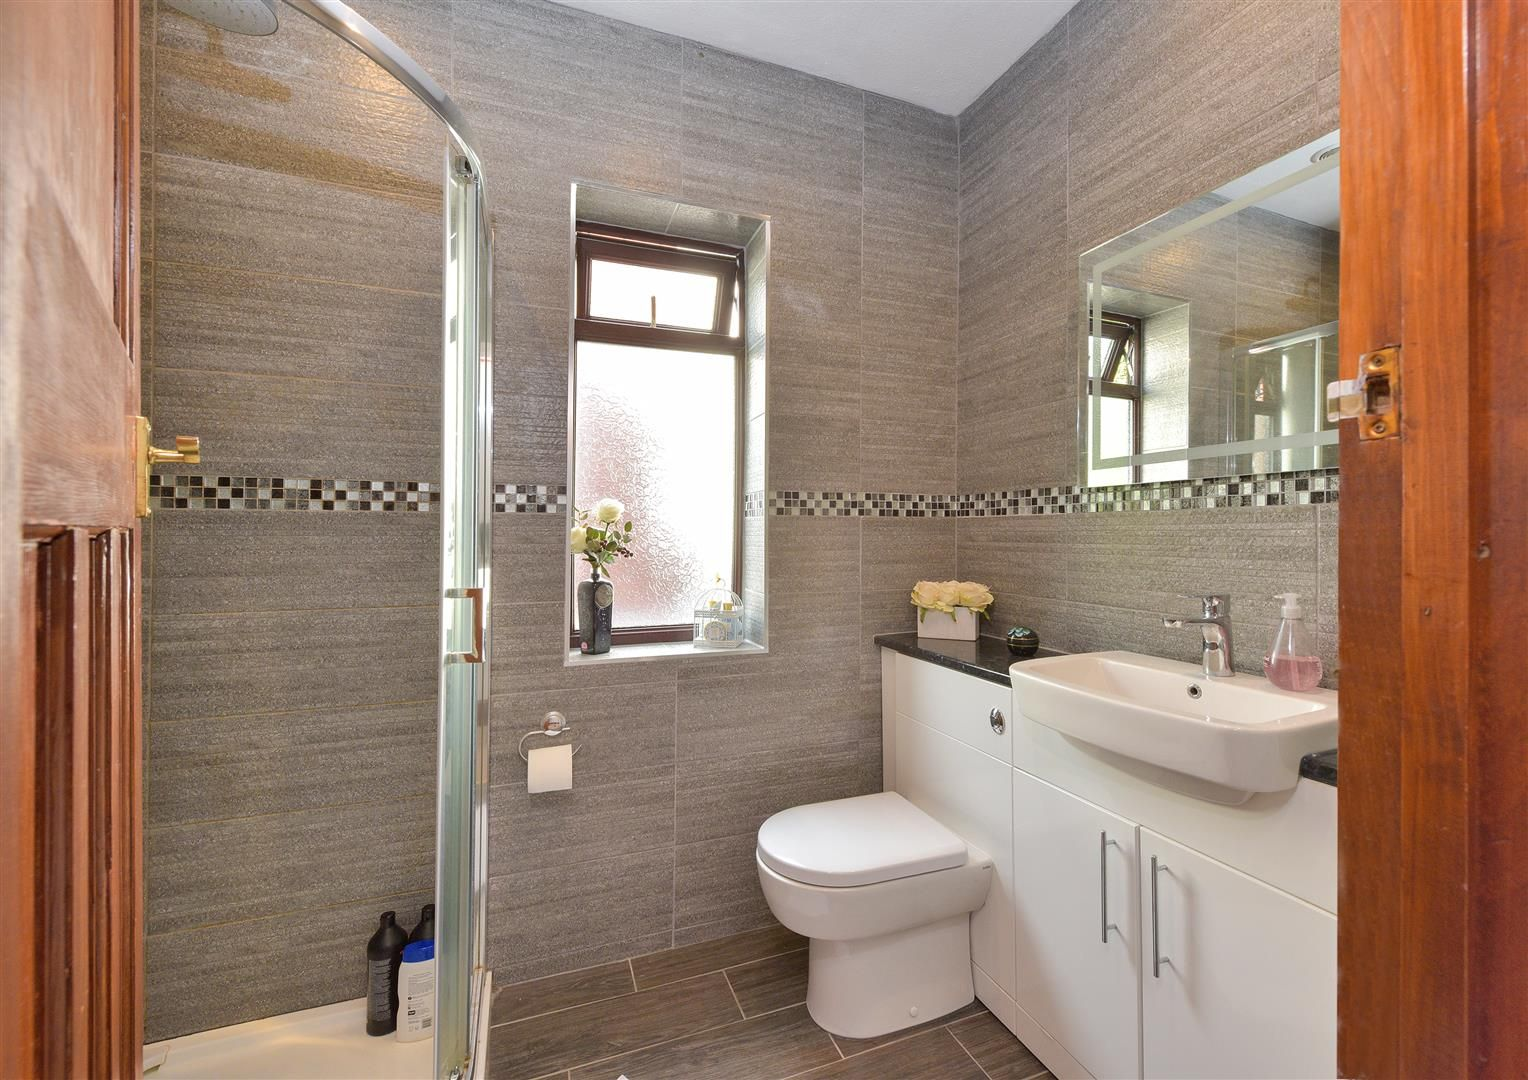 5 bed semi-detached for sale 19